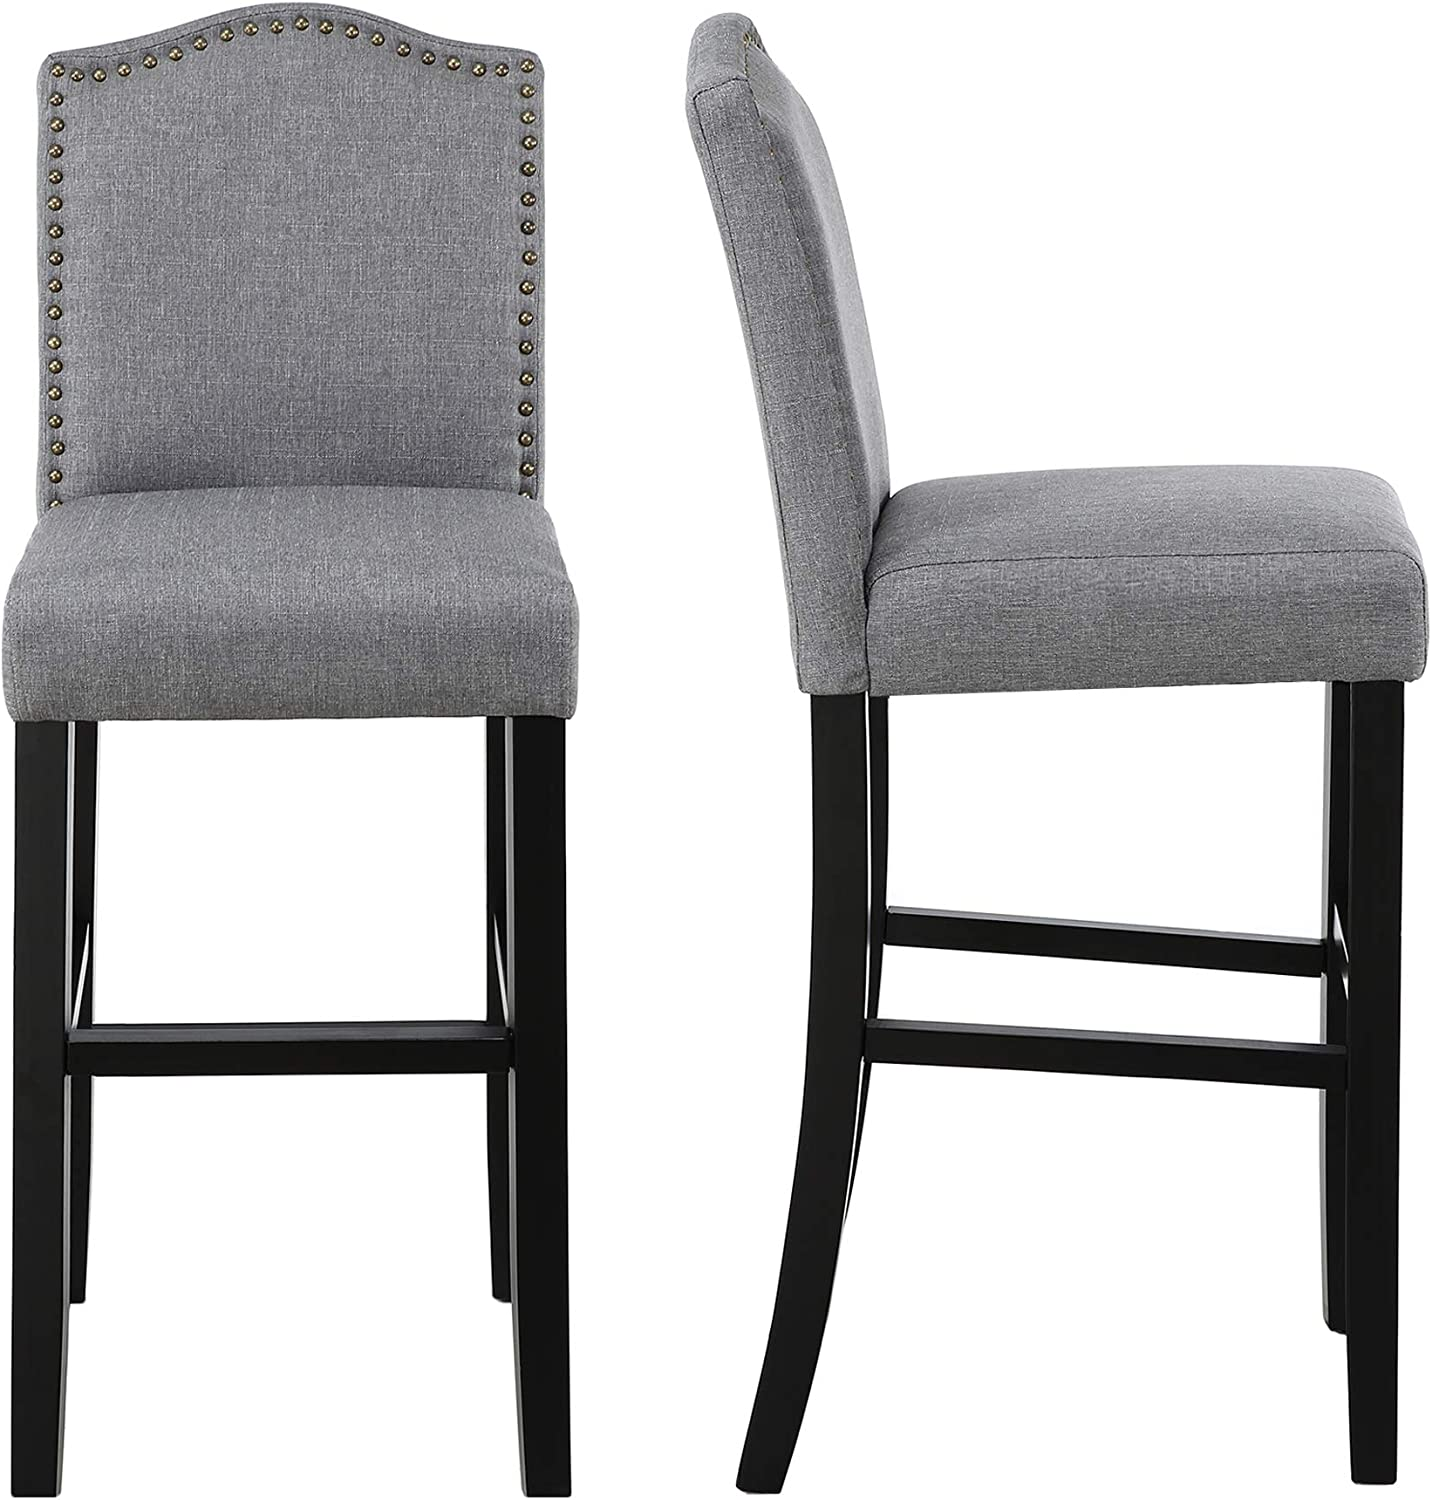 Dagonhil 29 Inches Bar Height Bar Stools With Bronze Nail Gray Set Of 2 Kitchen Dining Amazon Com